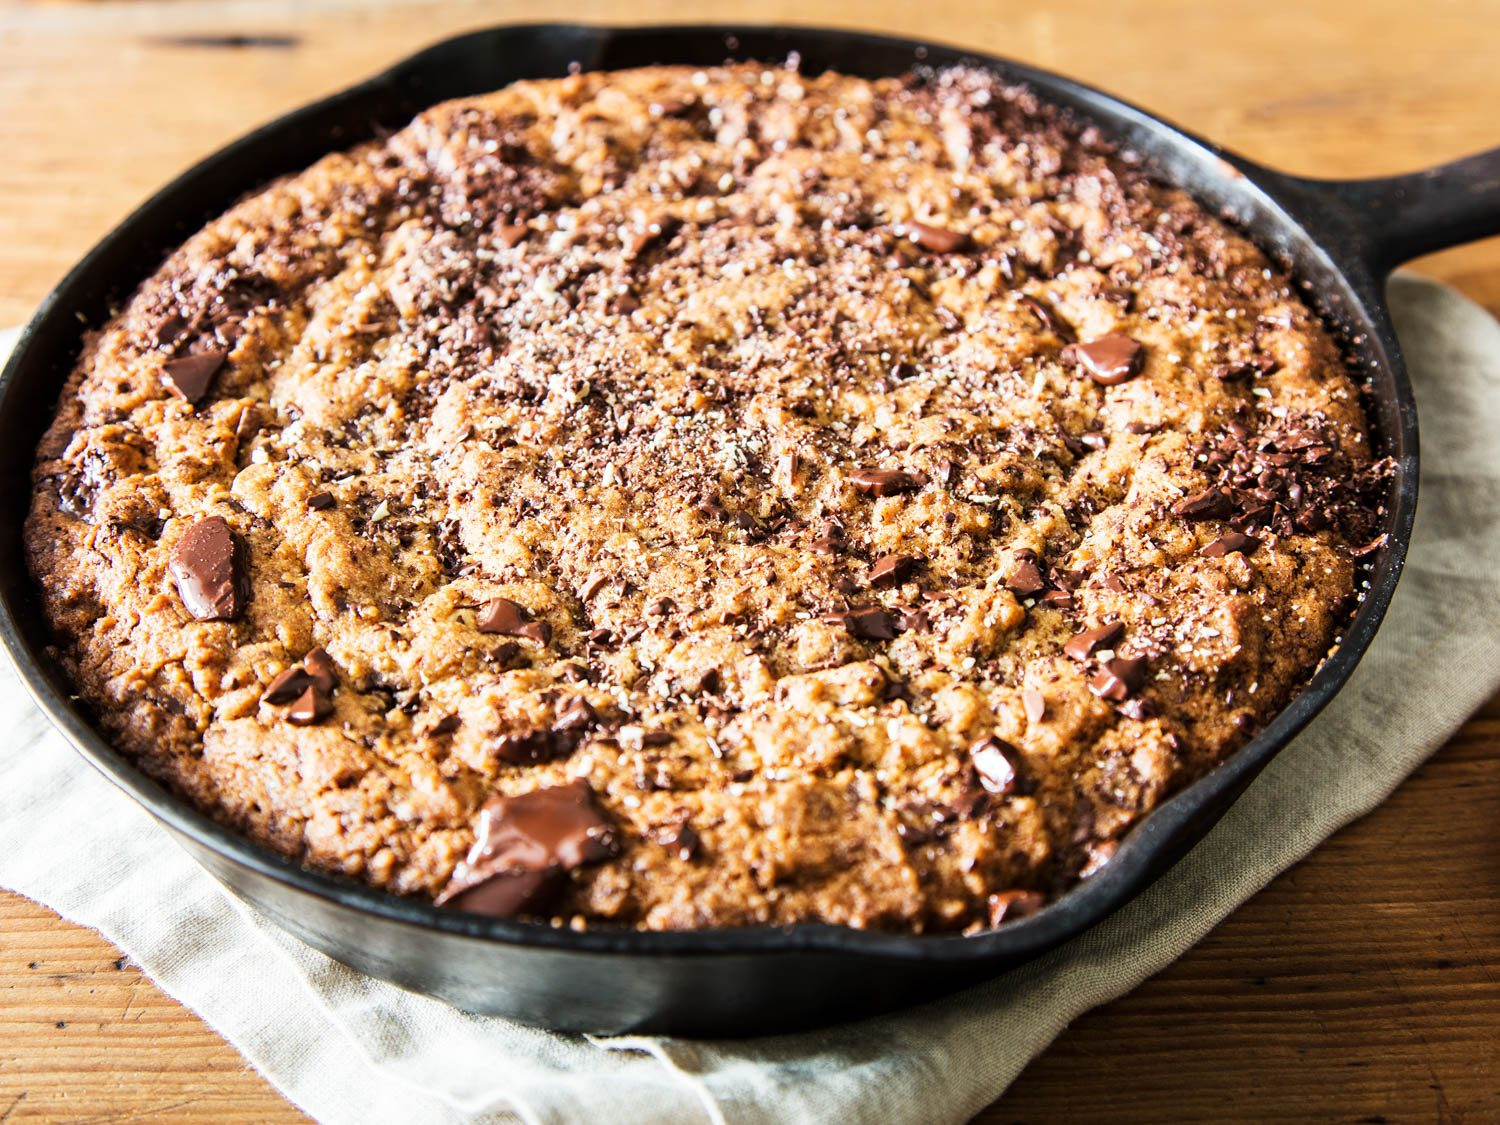 Chocolate Chip Cookie Cake In Cast Iron Skillet